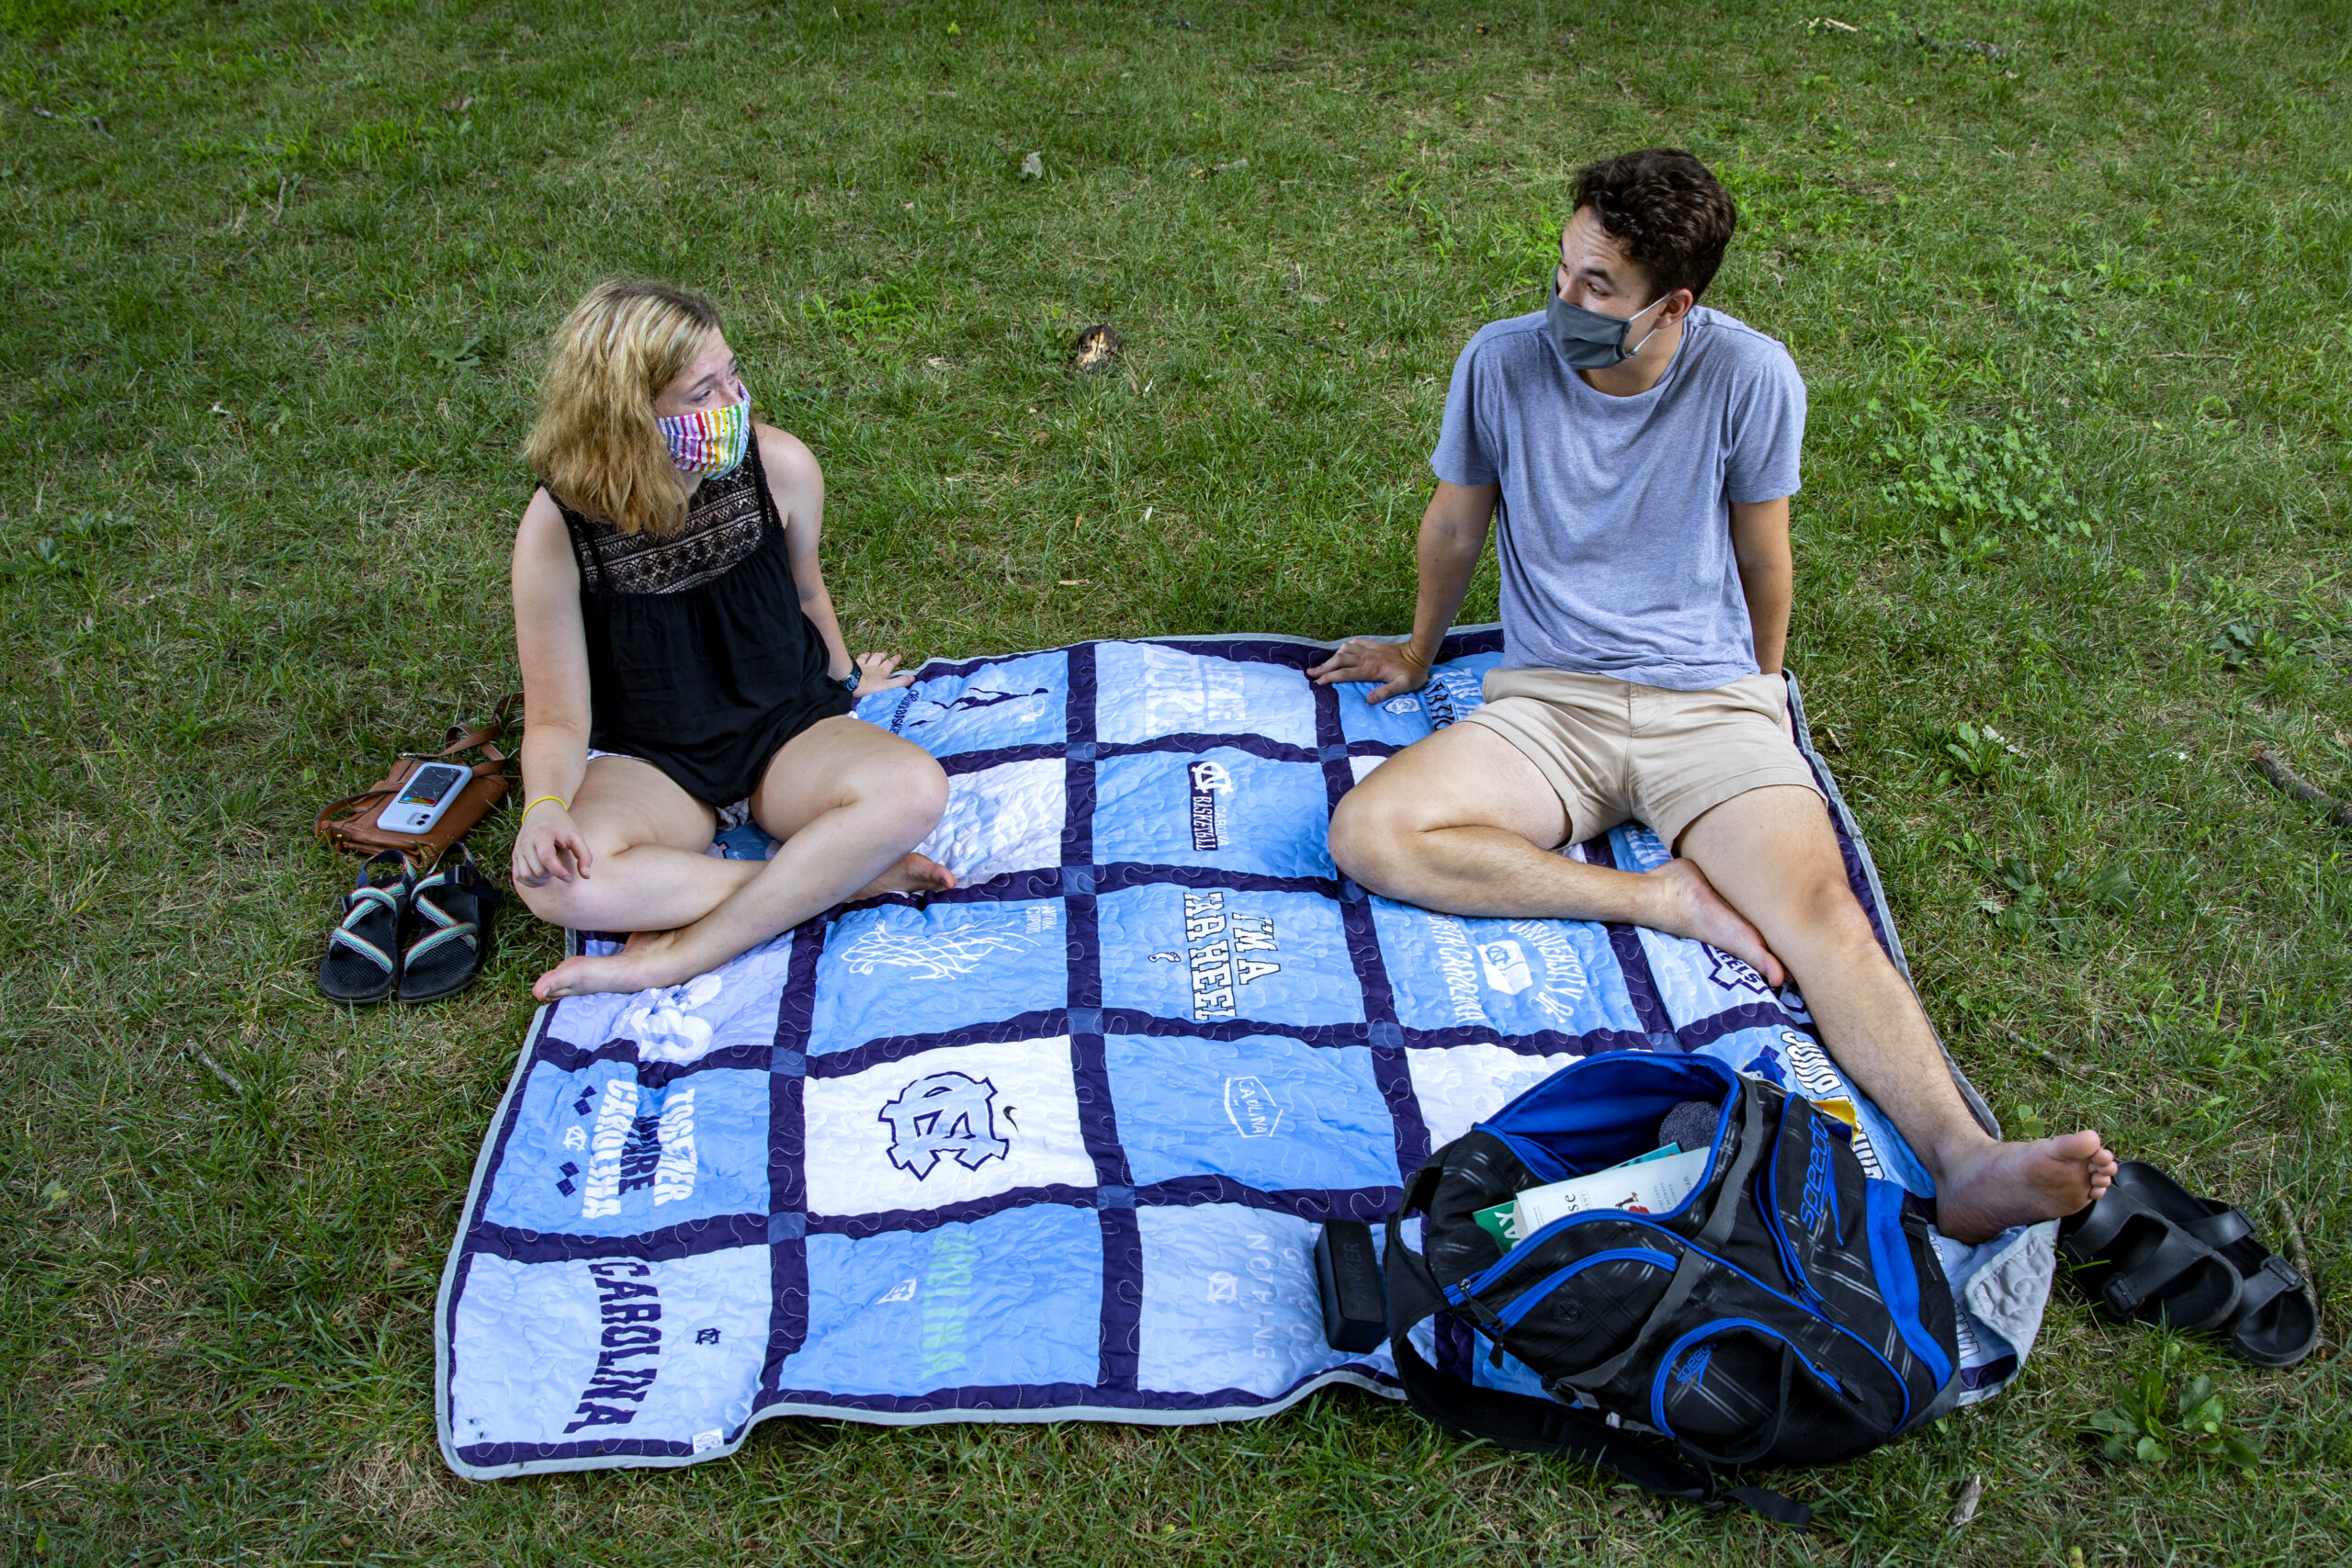 Students on lawn on campus.